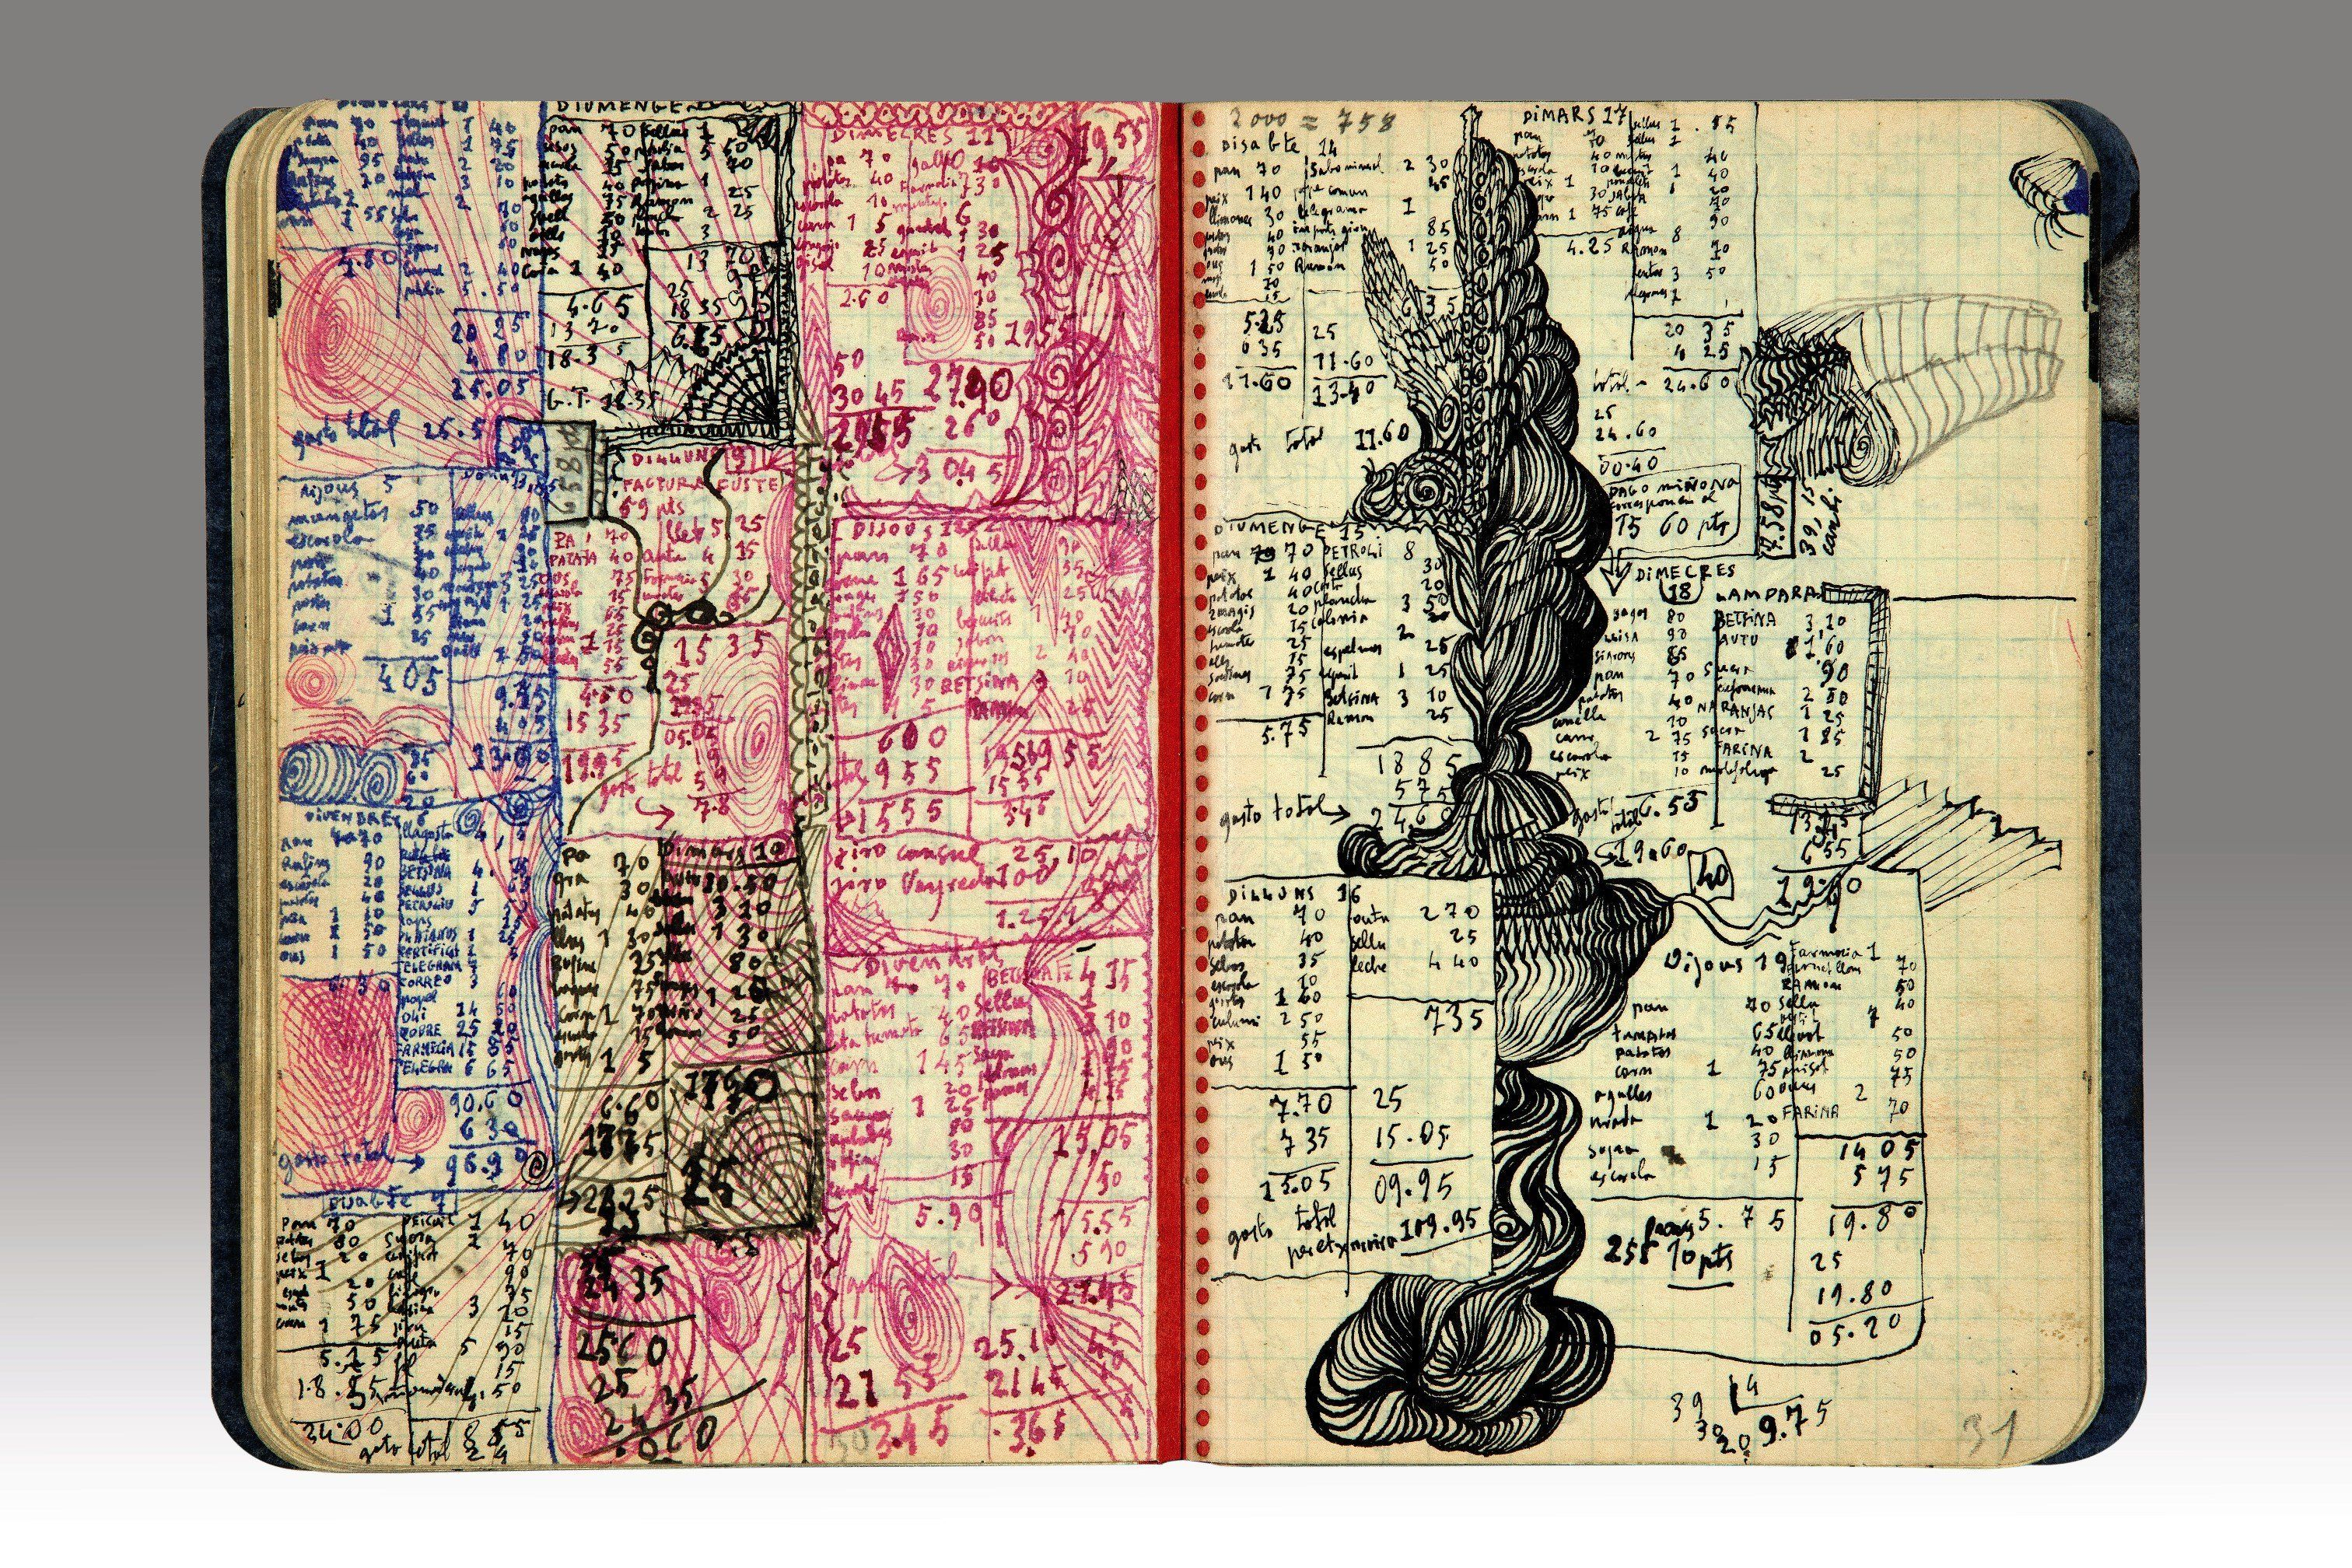 Salvador Dalí's diary, circa 1930-1935, includes 42 pages of ink drawings and sketches, together with his notes, thoug